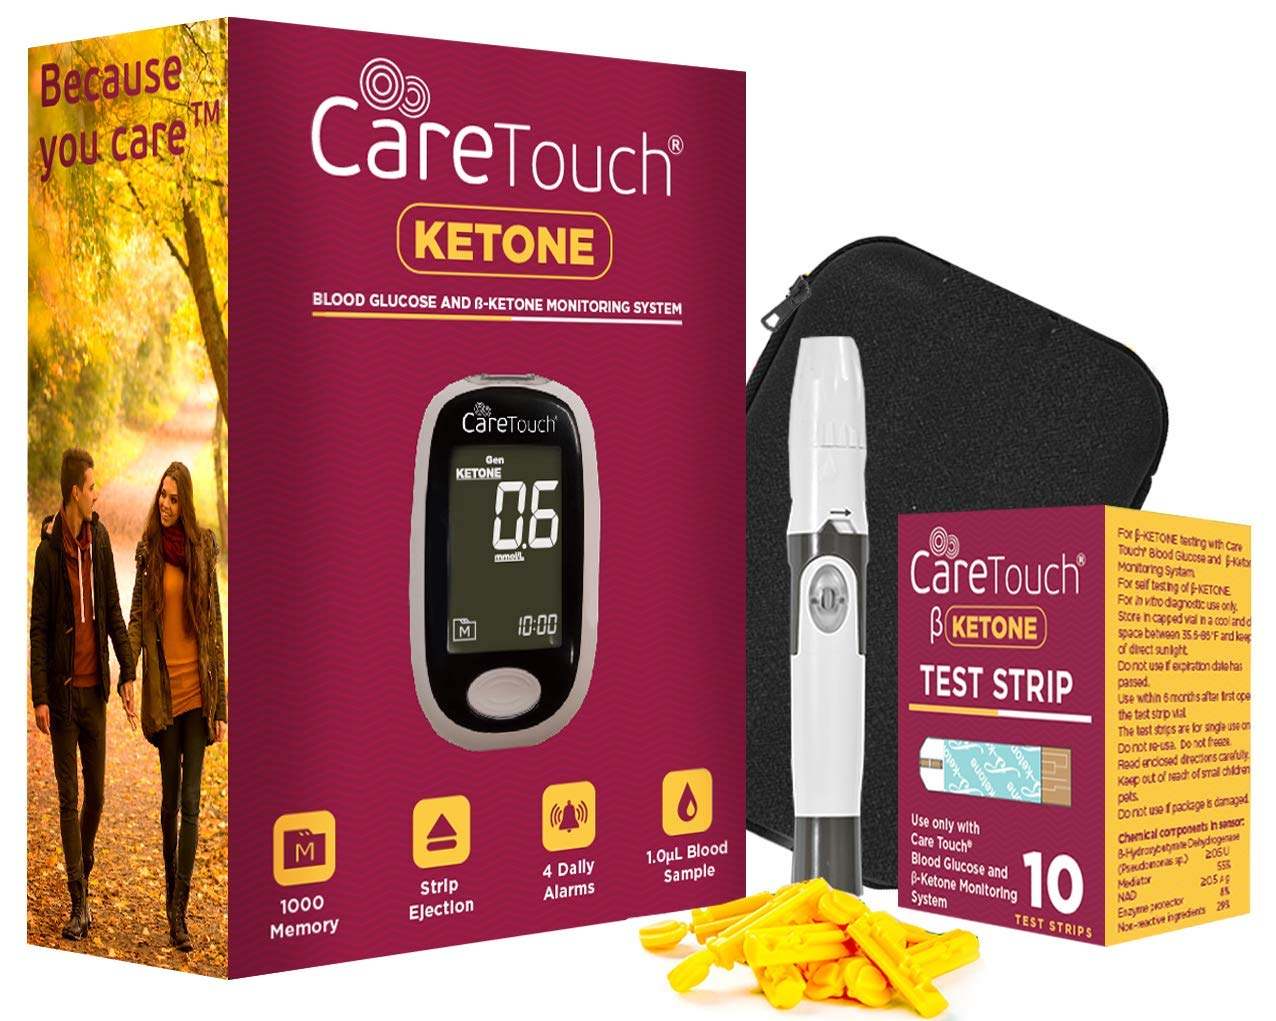 Care Touch Ketone Testing Kit - Ketone Meter w Strip Ejection, 10 Ketone Blood Test Strips, 10 Lancets, Lancing Device, Carrying Case for Diabetics and Ketogenic, Paleo, Atkins Diet by Care Touch